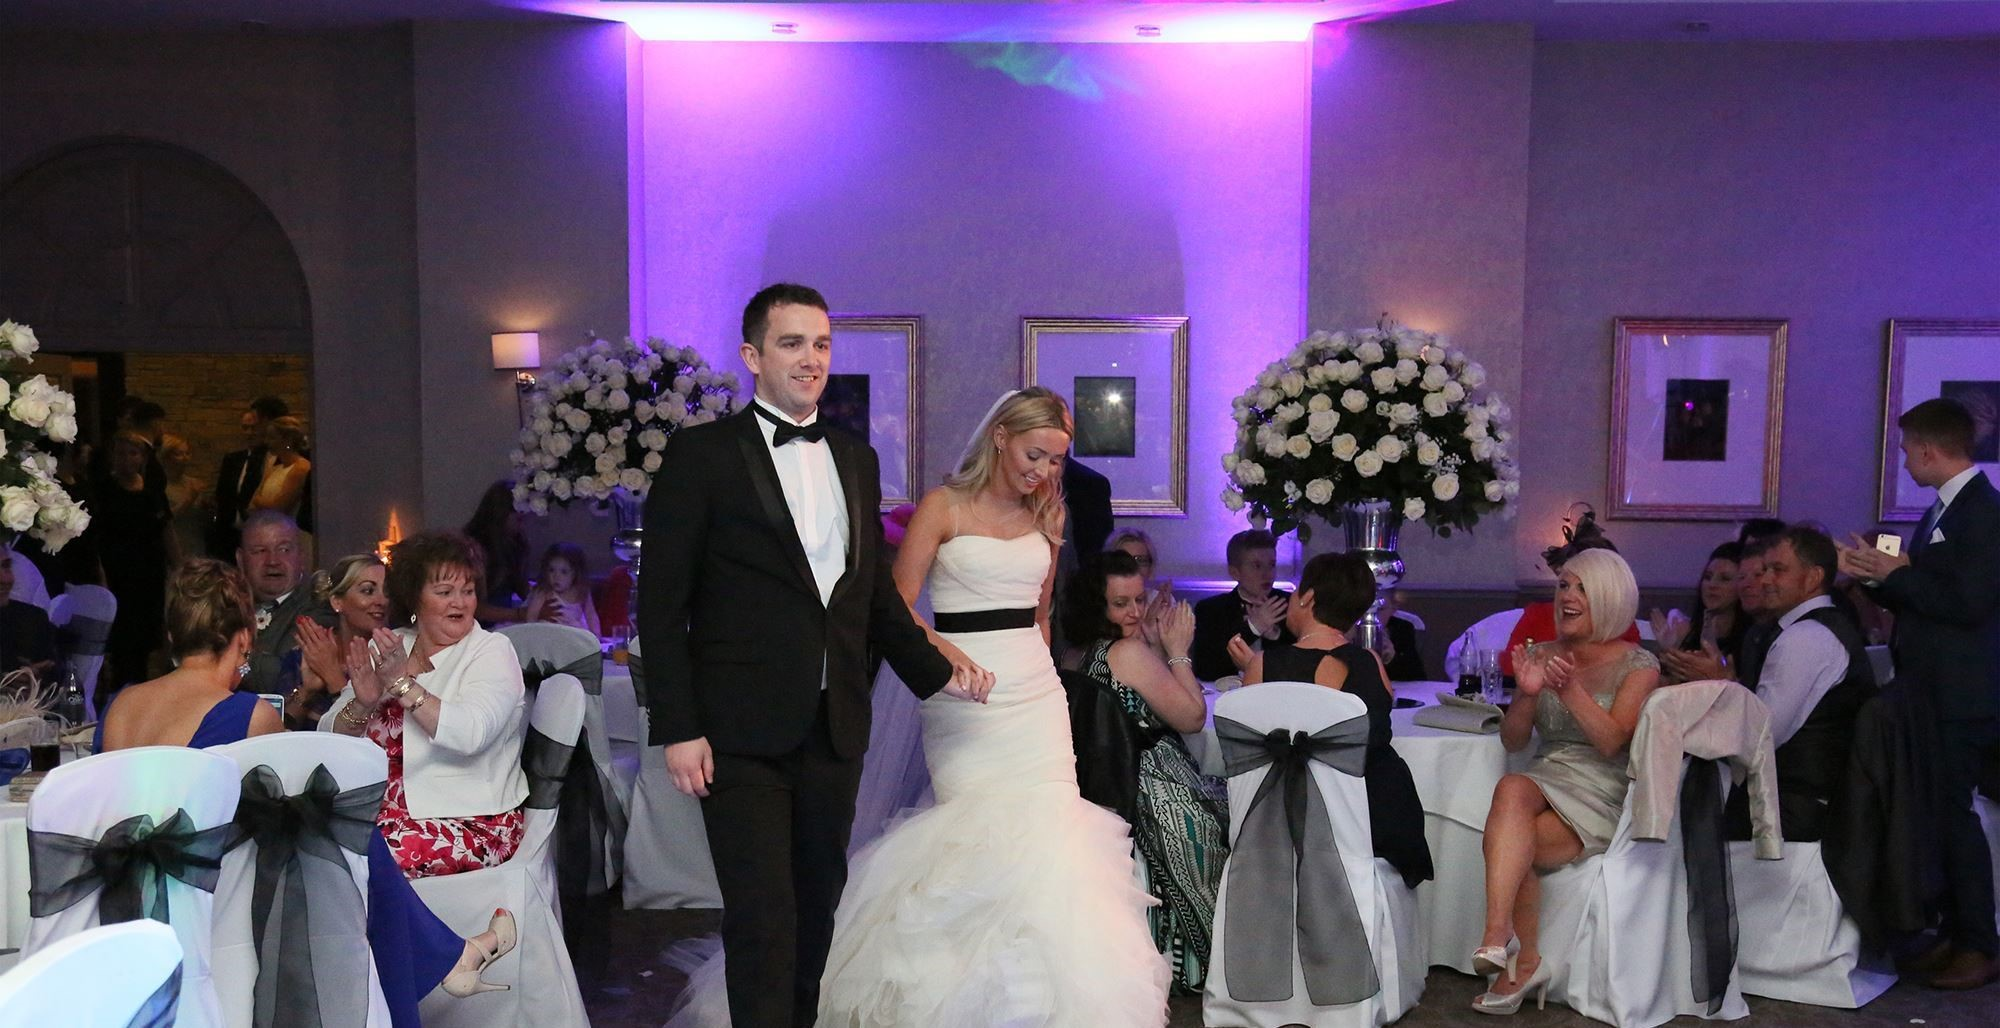 Wedding Reception Venue in Ayrshire